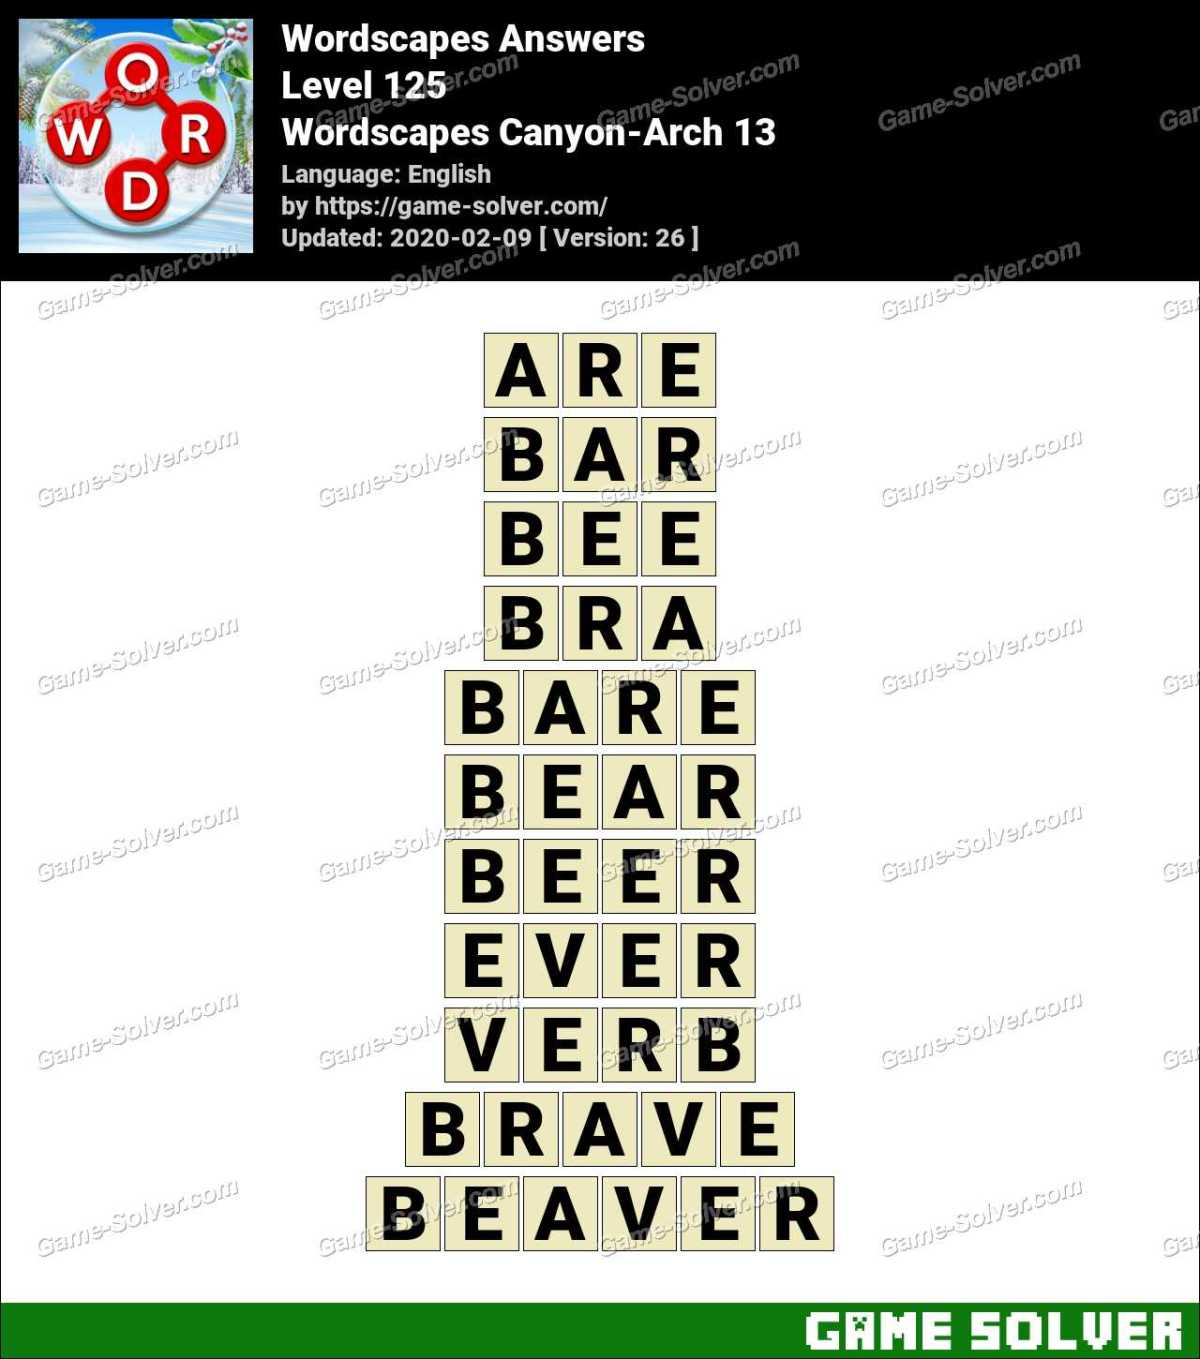 Wordscapes Canyon-Arch 13 Answers